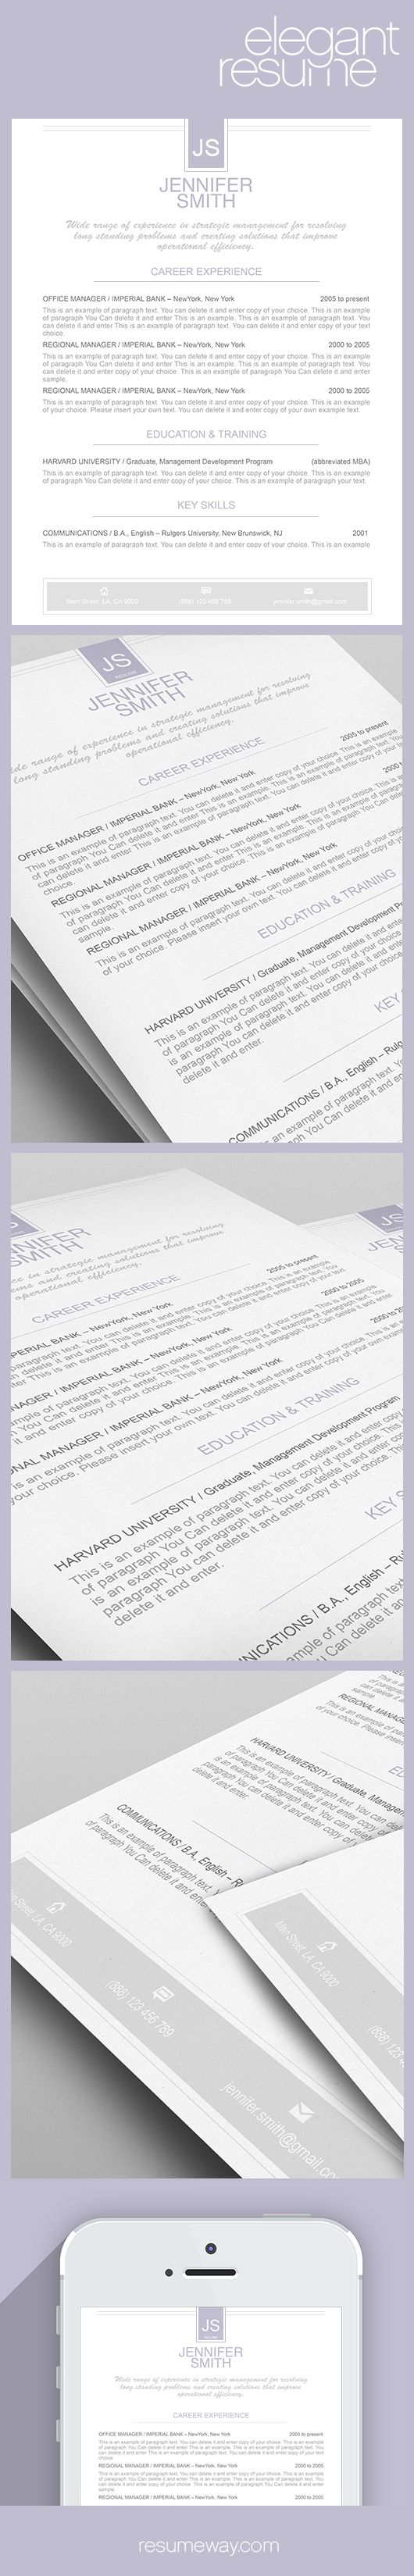 best ms word resume template